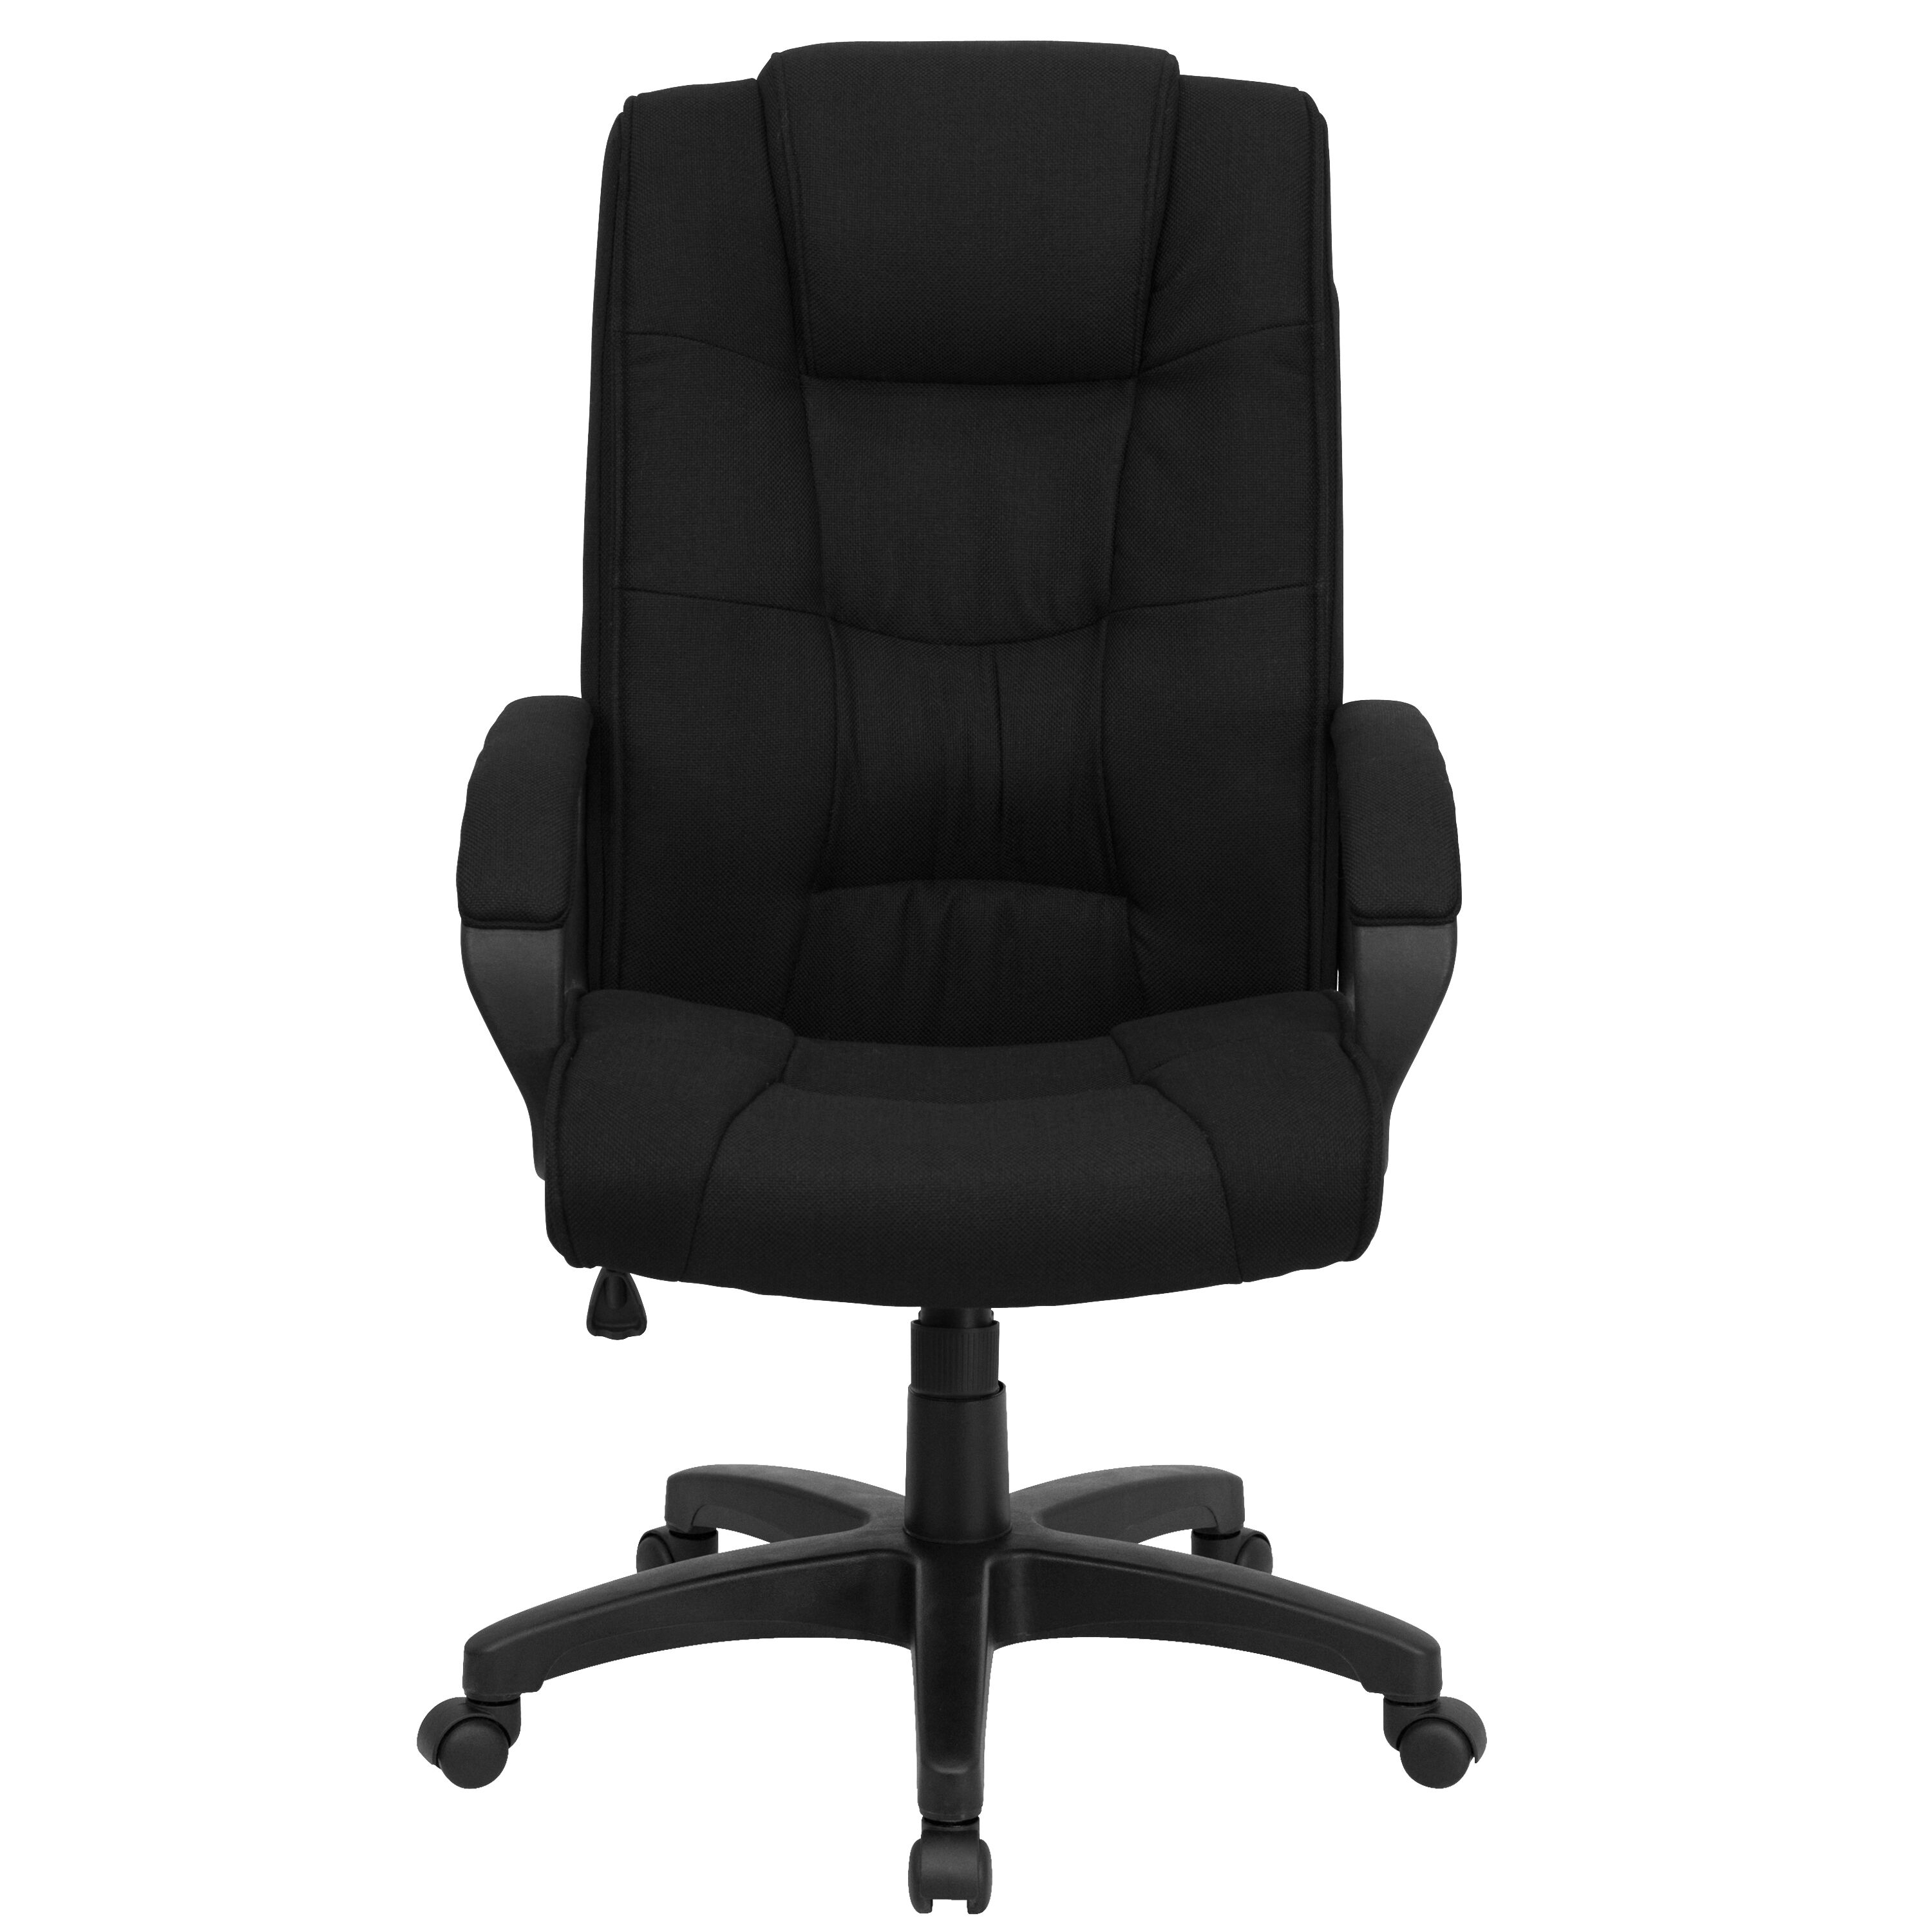 Go Chair Black High Back Fabric Chair Go 5301b Bk Gg